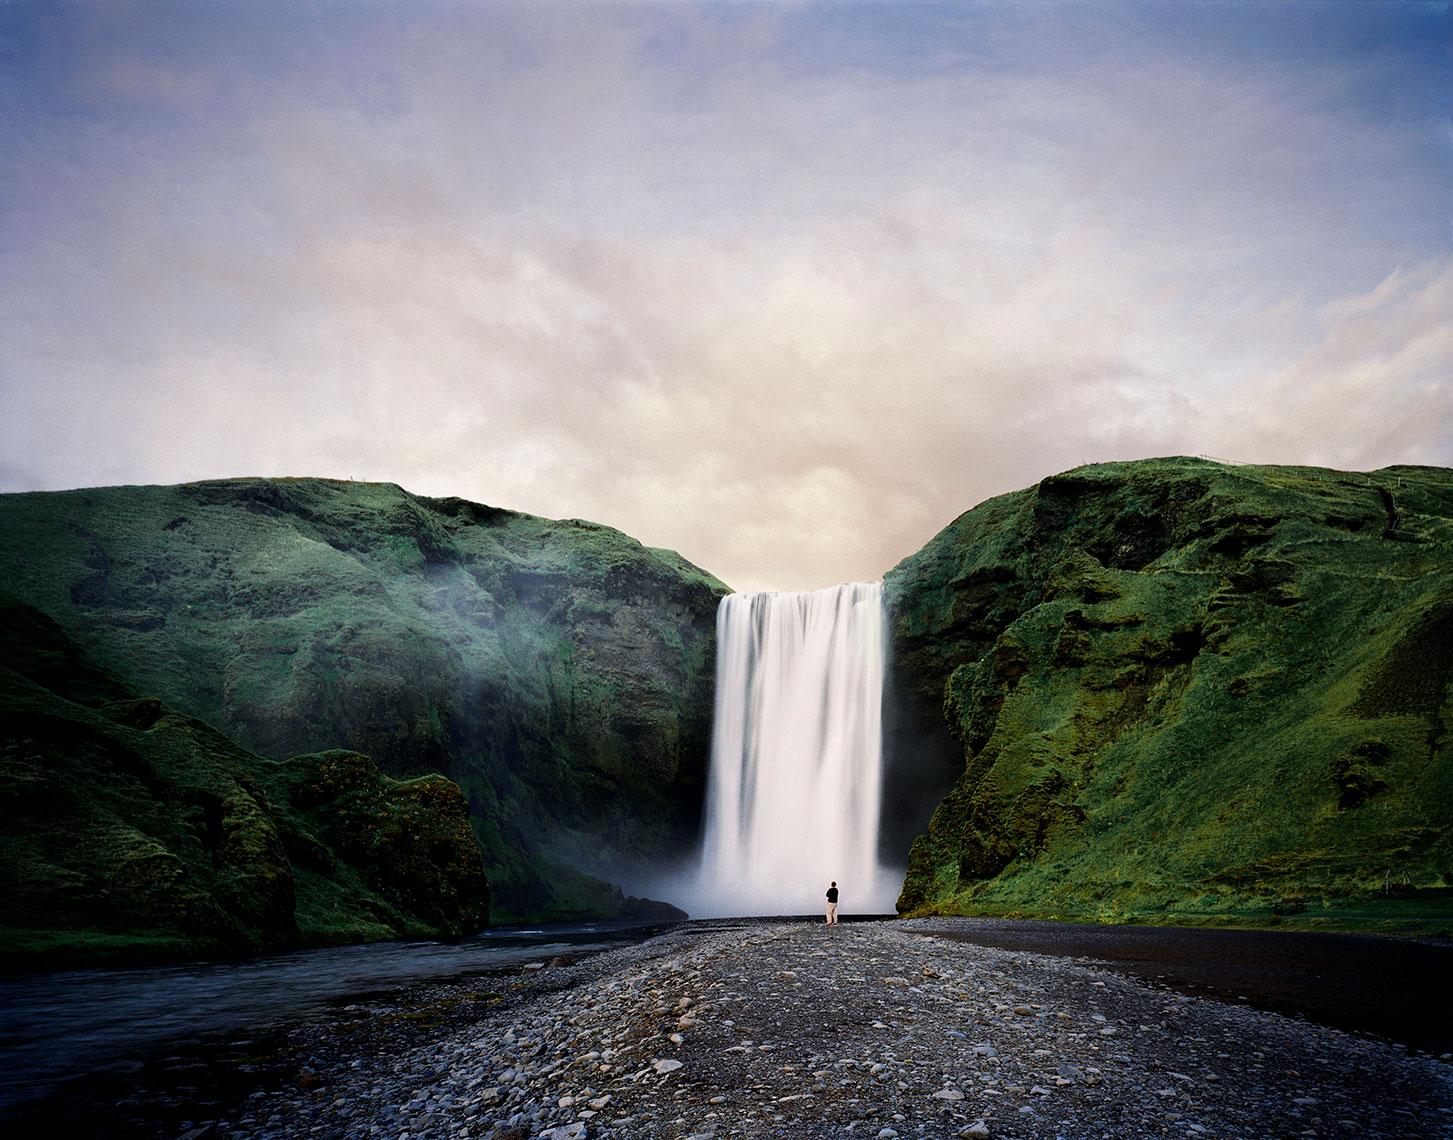 Photography, Photo Illustration, Digital Imaging and Retouching for Iceland_54593_p17_i59